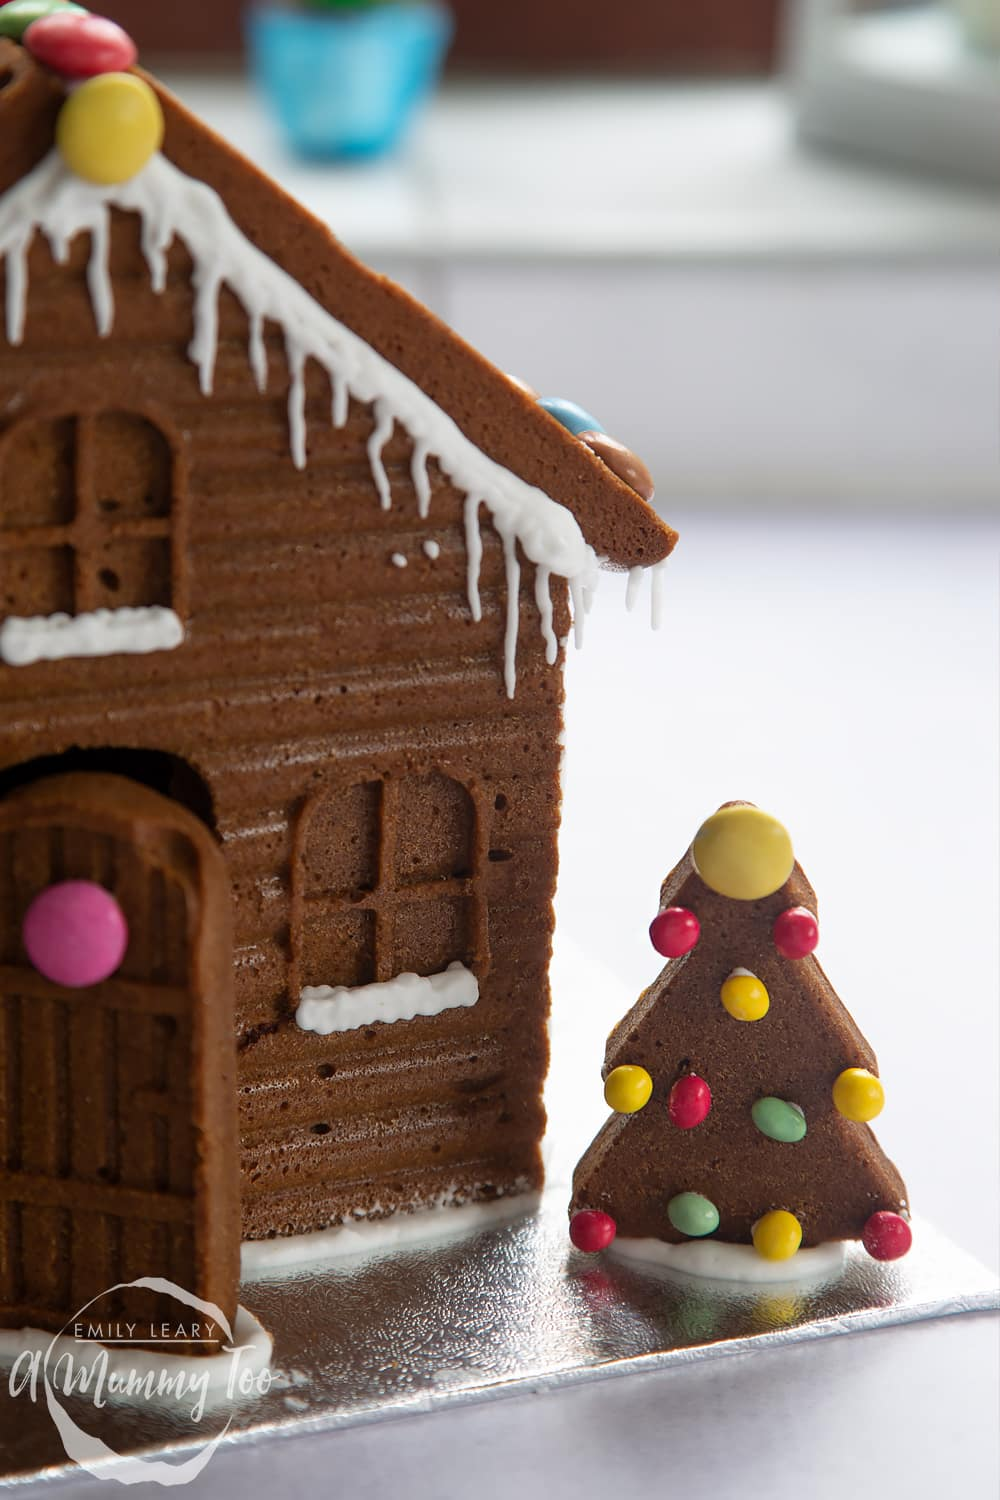 A gingerbread house in close up. The focus is on a gingerbread Christmas tree, decorated with mini chocolate beans.